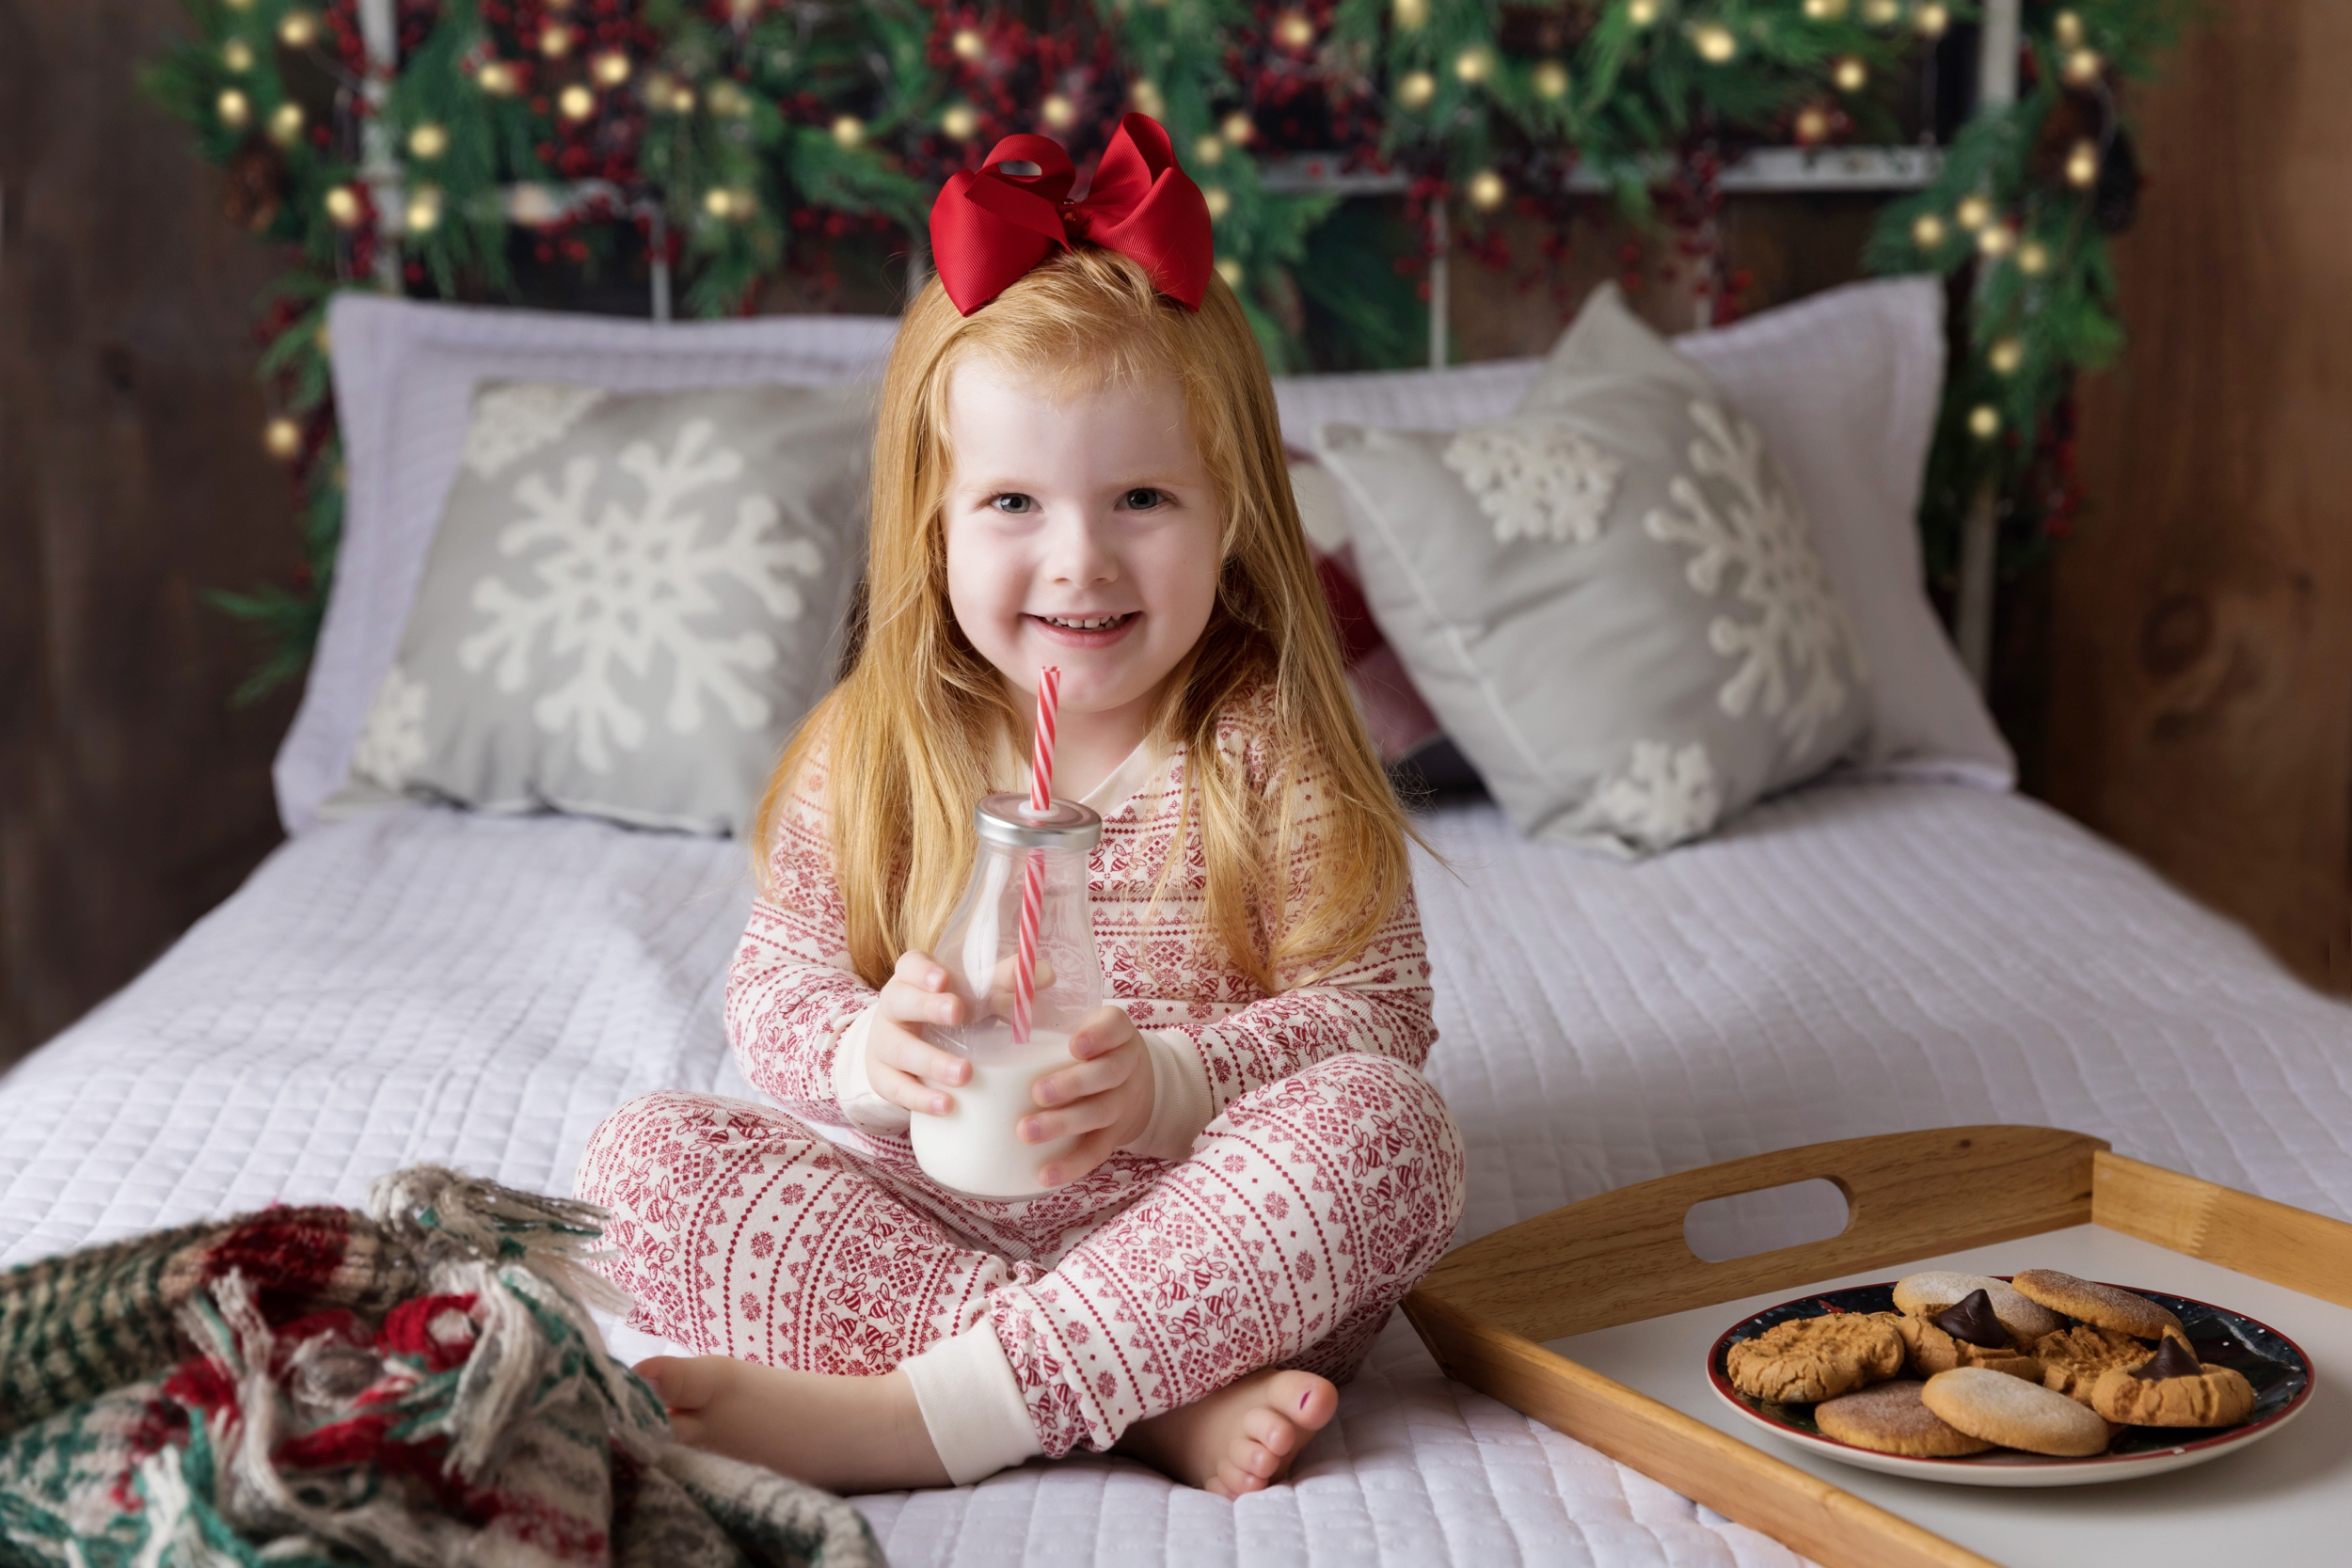 Christmas-Mini-Sessions-Jessica-Doffing-Photography_0005.jpg